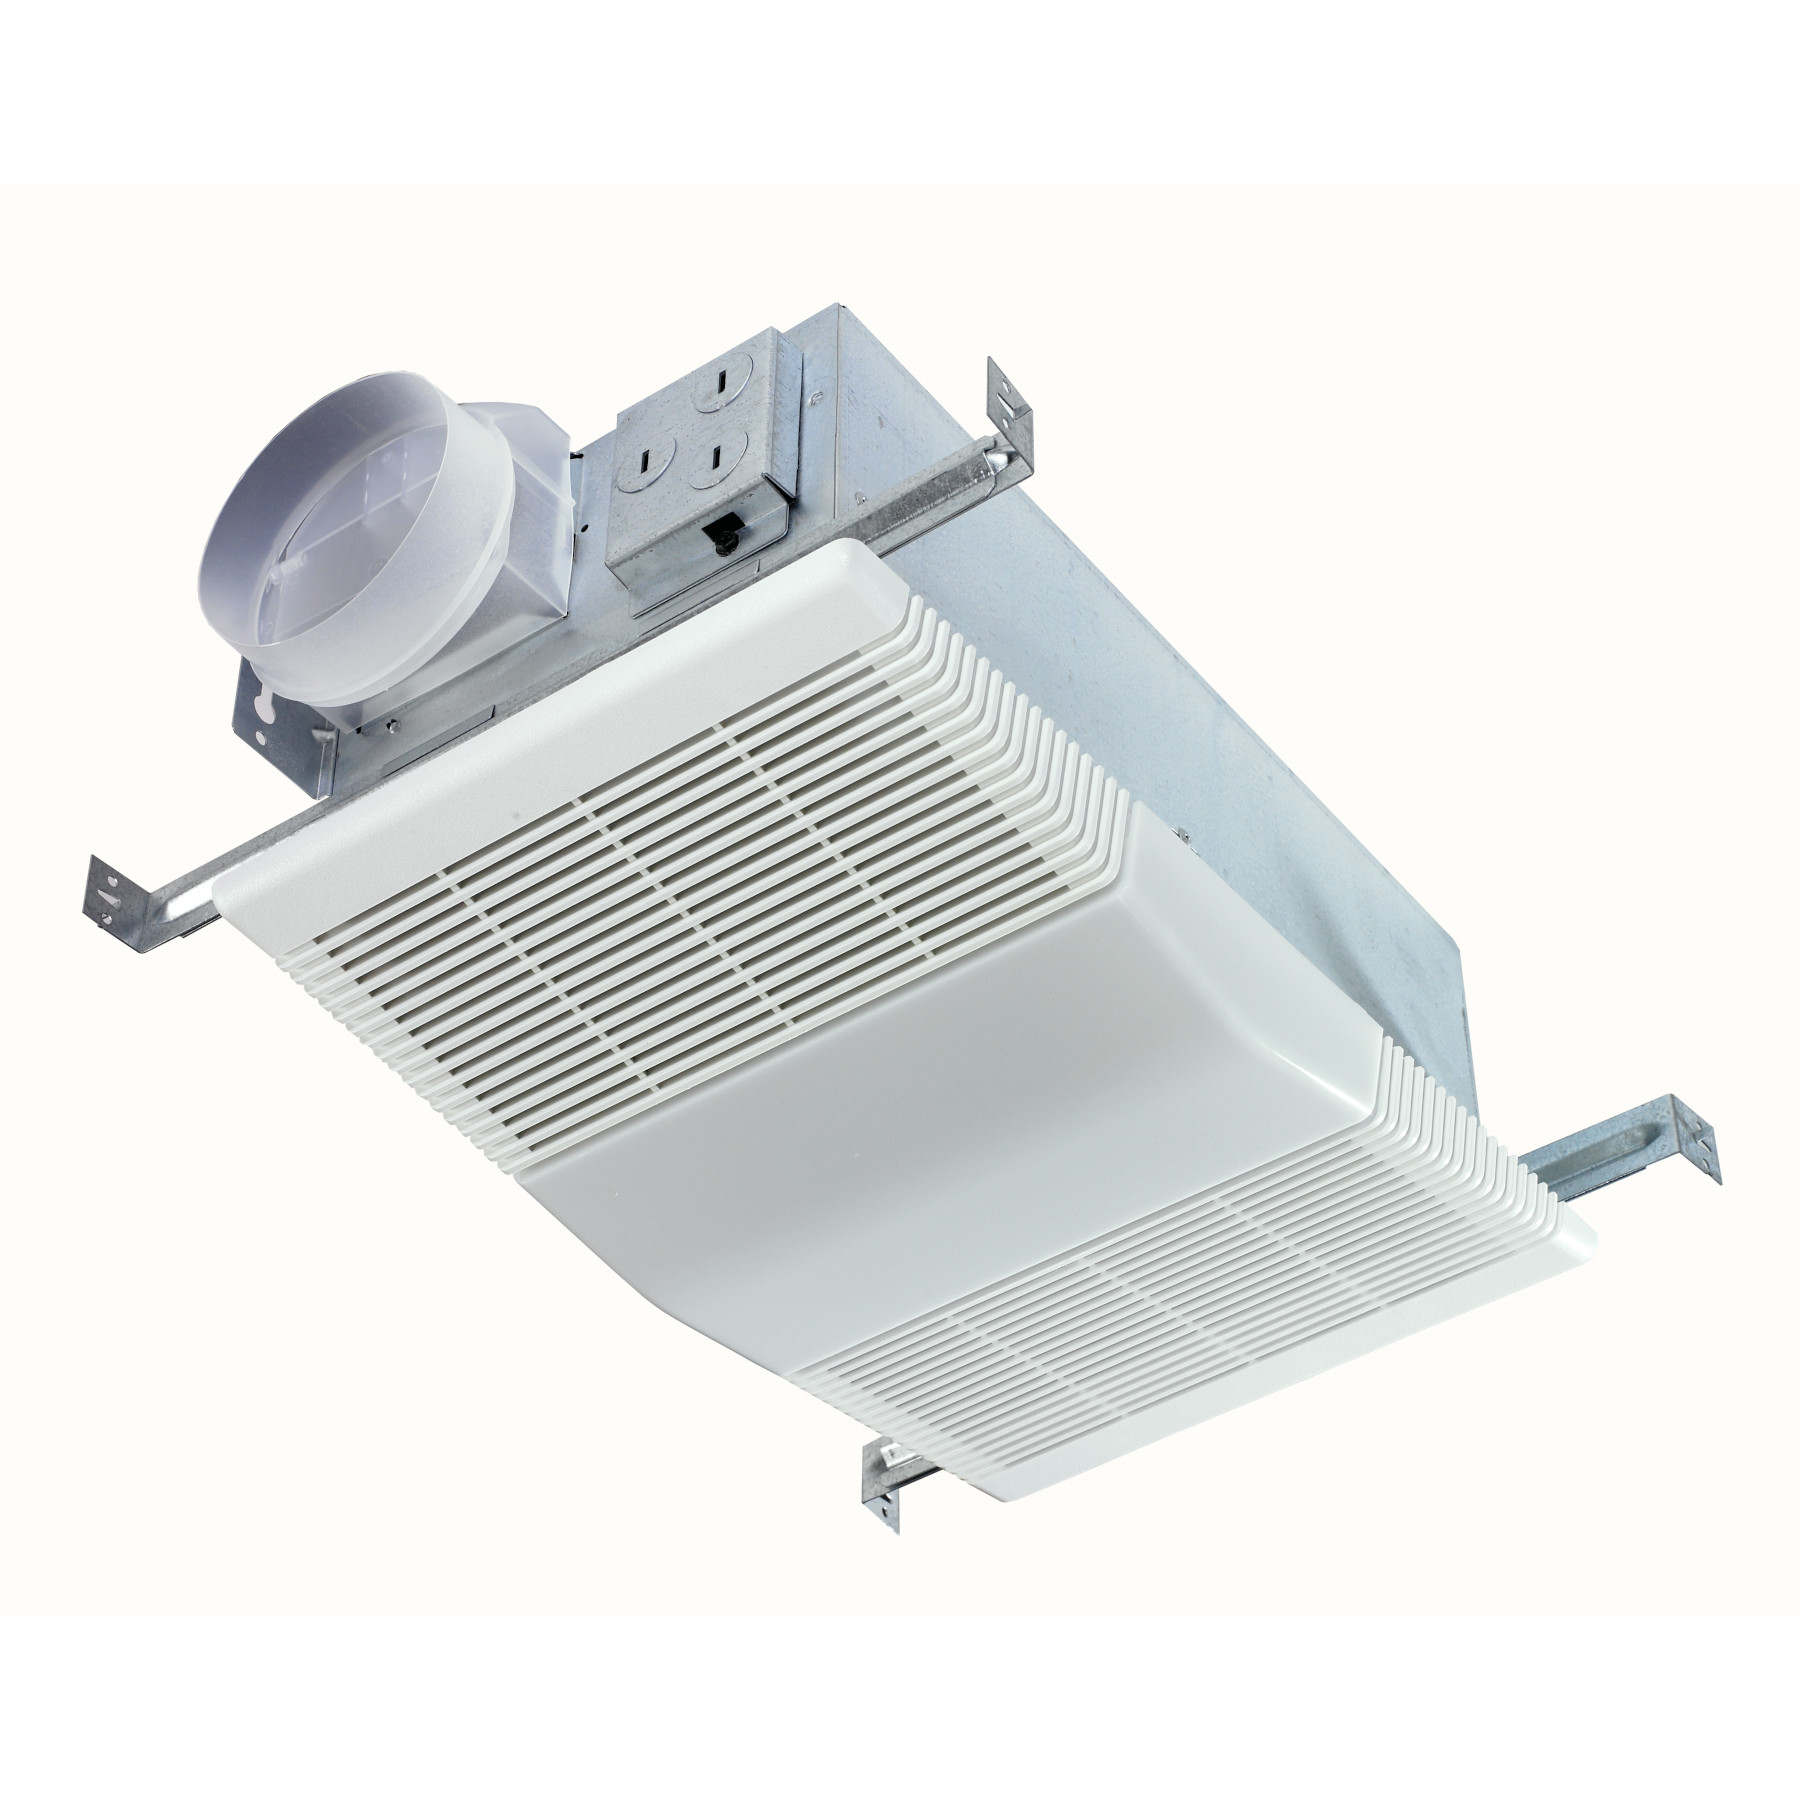 NuTone® 70 CFM Ventilation Fan with Light, White Polymeric Lens and Grille, 4.0 Sones